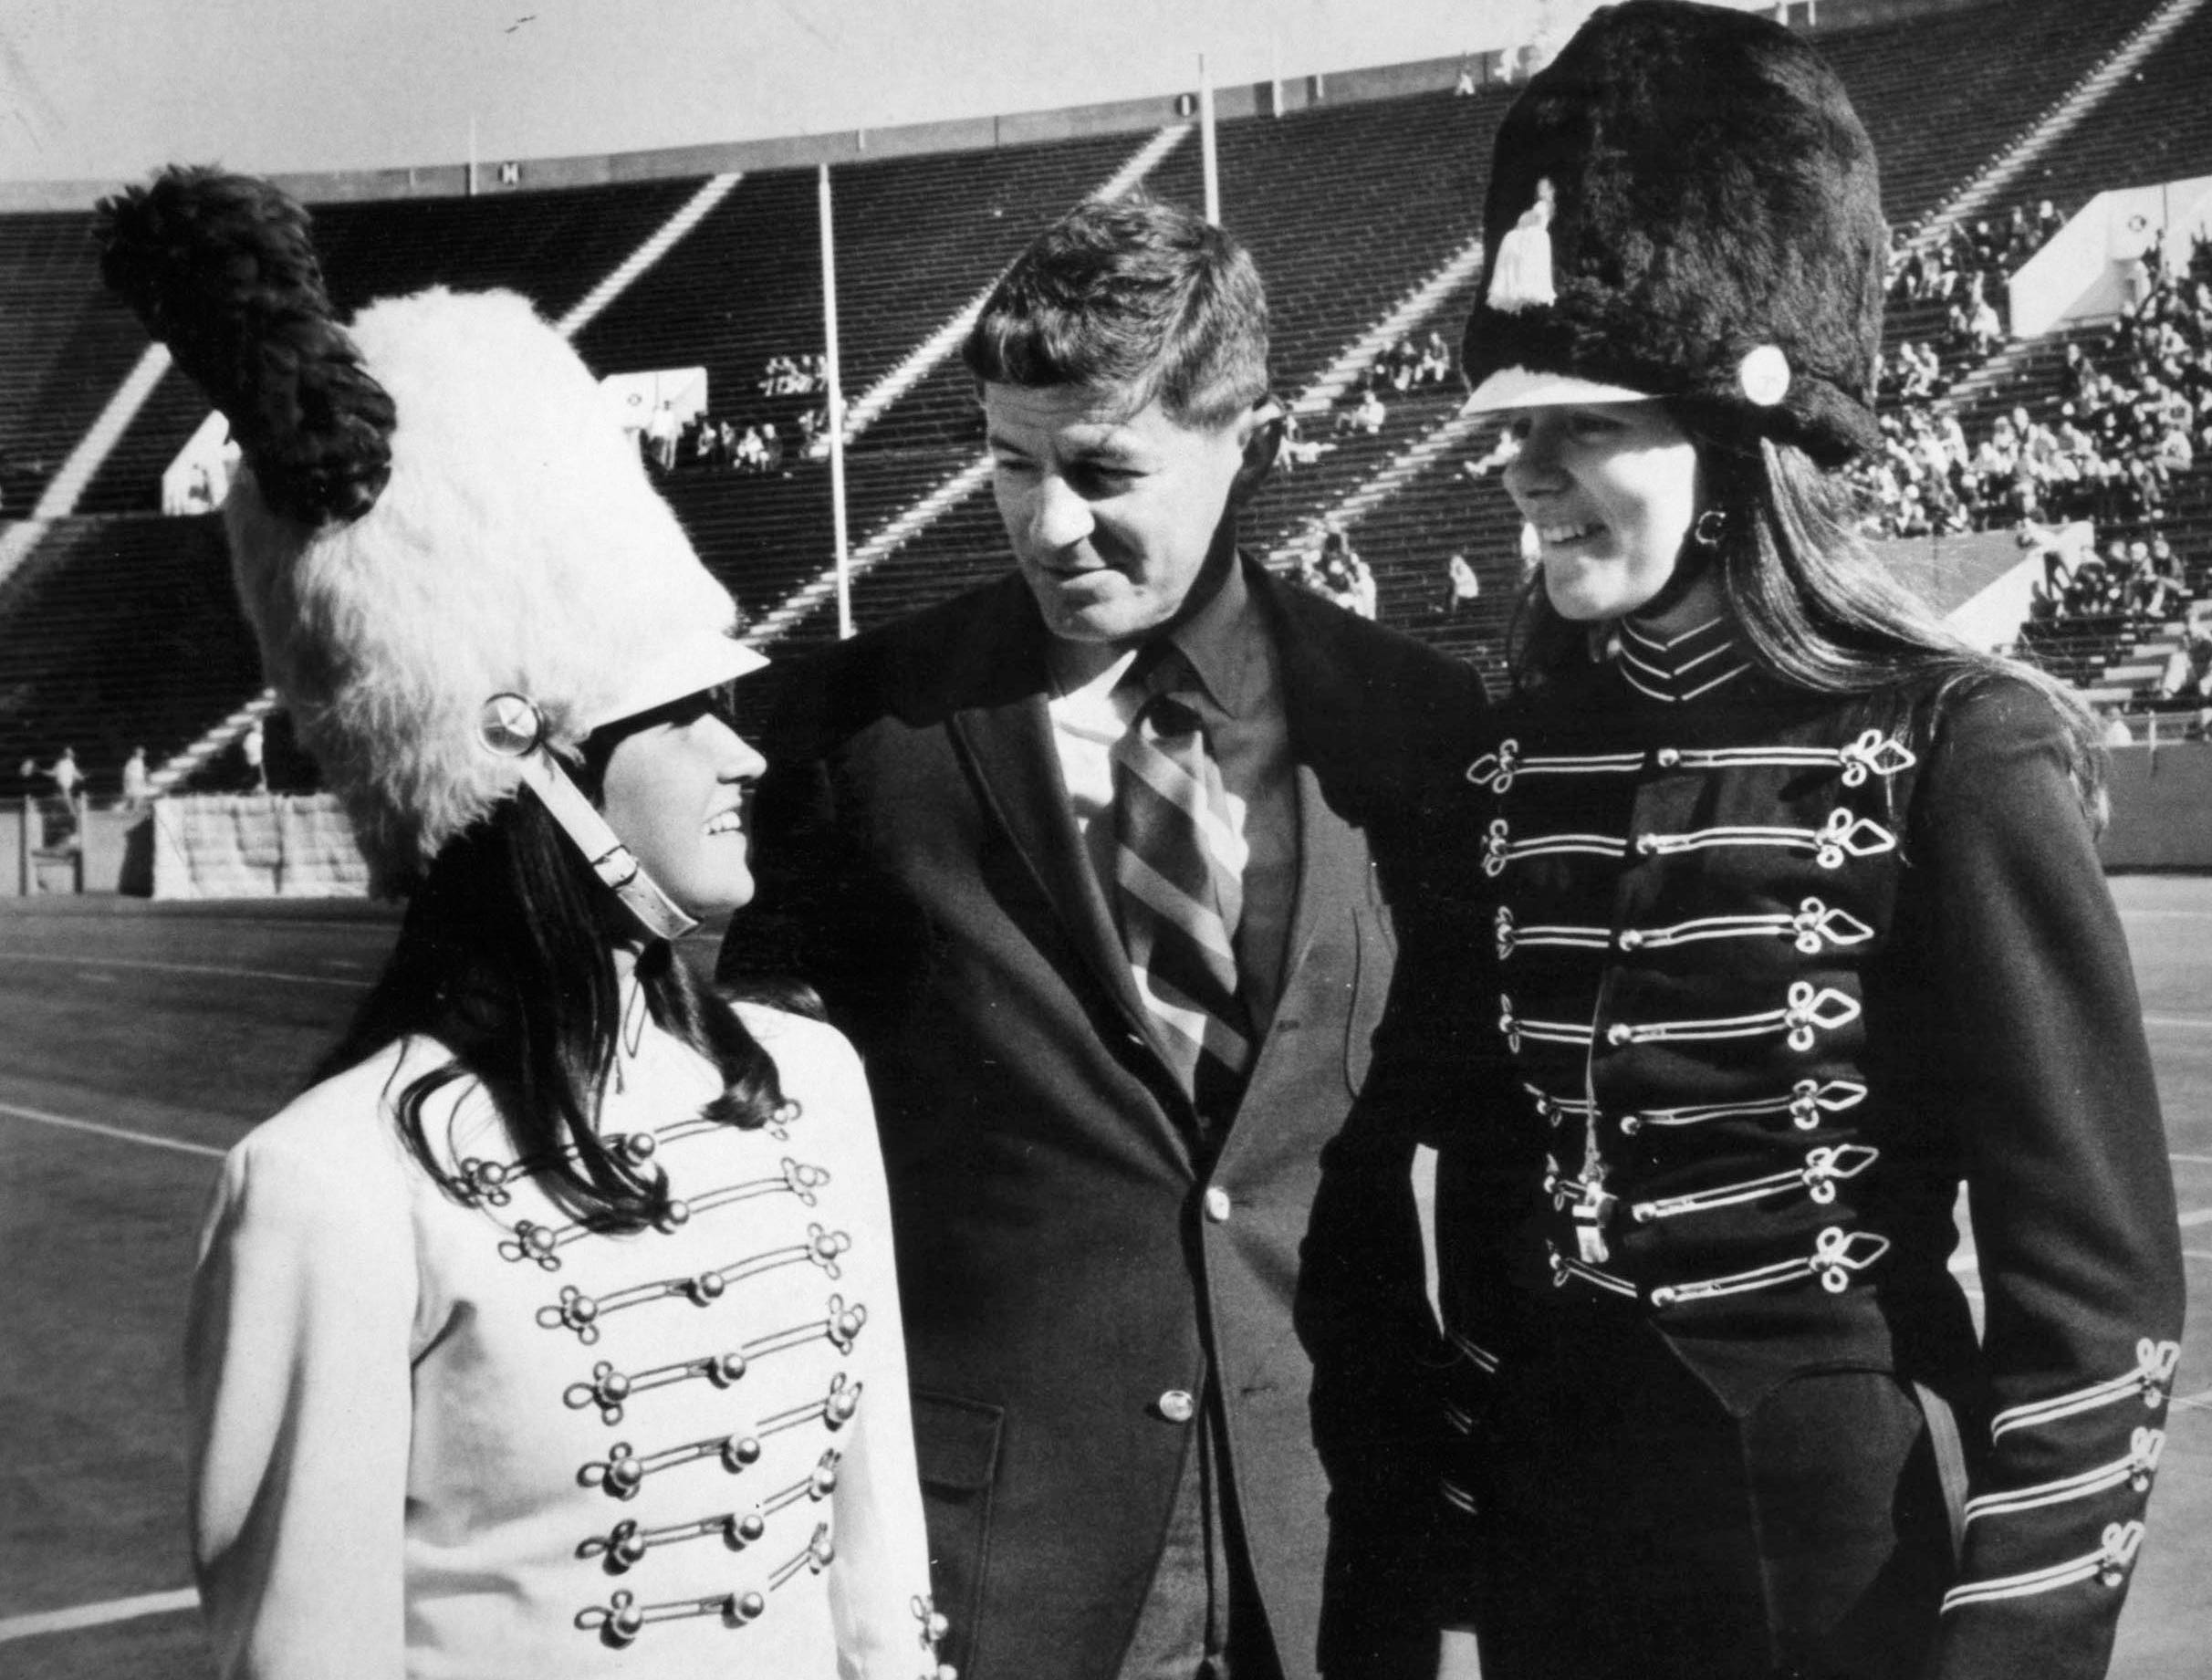 University of Tennessee Pride of the Southland Band Director Dr. W. J. Julian talks with Patsy Malone, left, drum majorette of Two Rivers High School, Nashville, and Susan Freedman, head majorette of Lenoir City High School, on Oct. 27, 1968, at Neyland Stadium. Julian was congratulating the majorettes on their bands' victories in the UT Band Festival.